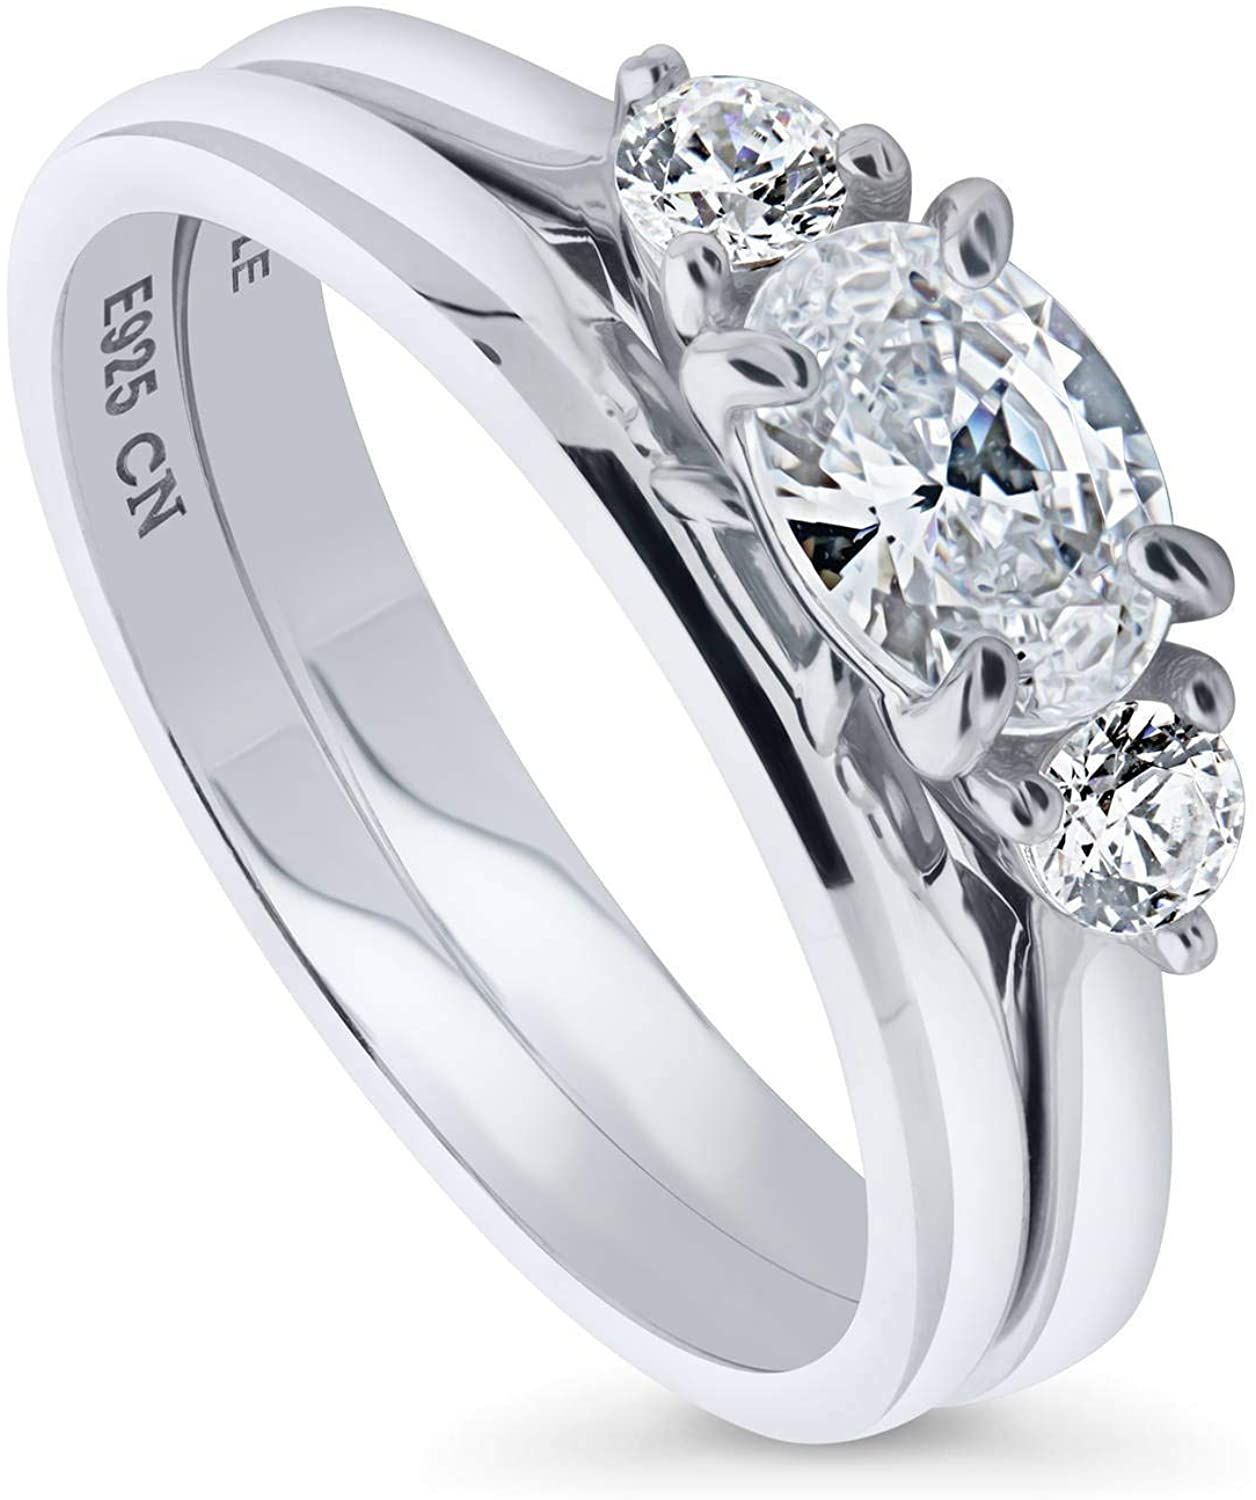 BERRICLE Rhodium Plated Sterling Silver 3-Stone East-West Engagement Wedding Ring Set Made with Swarovski Zirconia Oval Cut 0.98 CTW